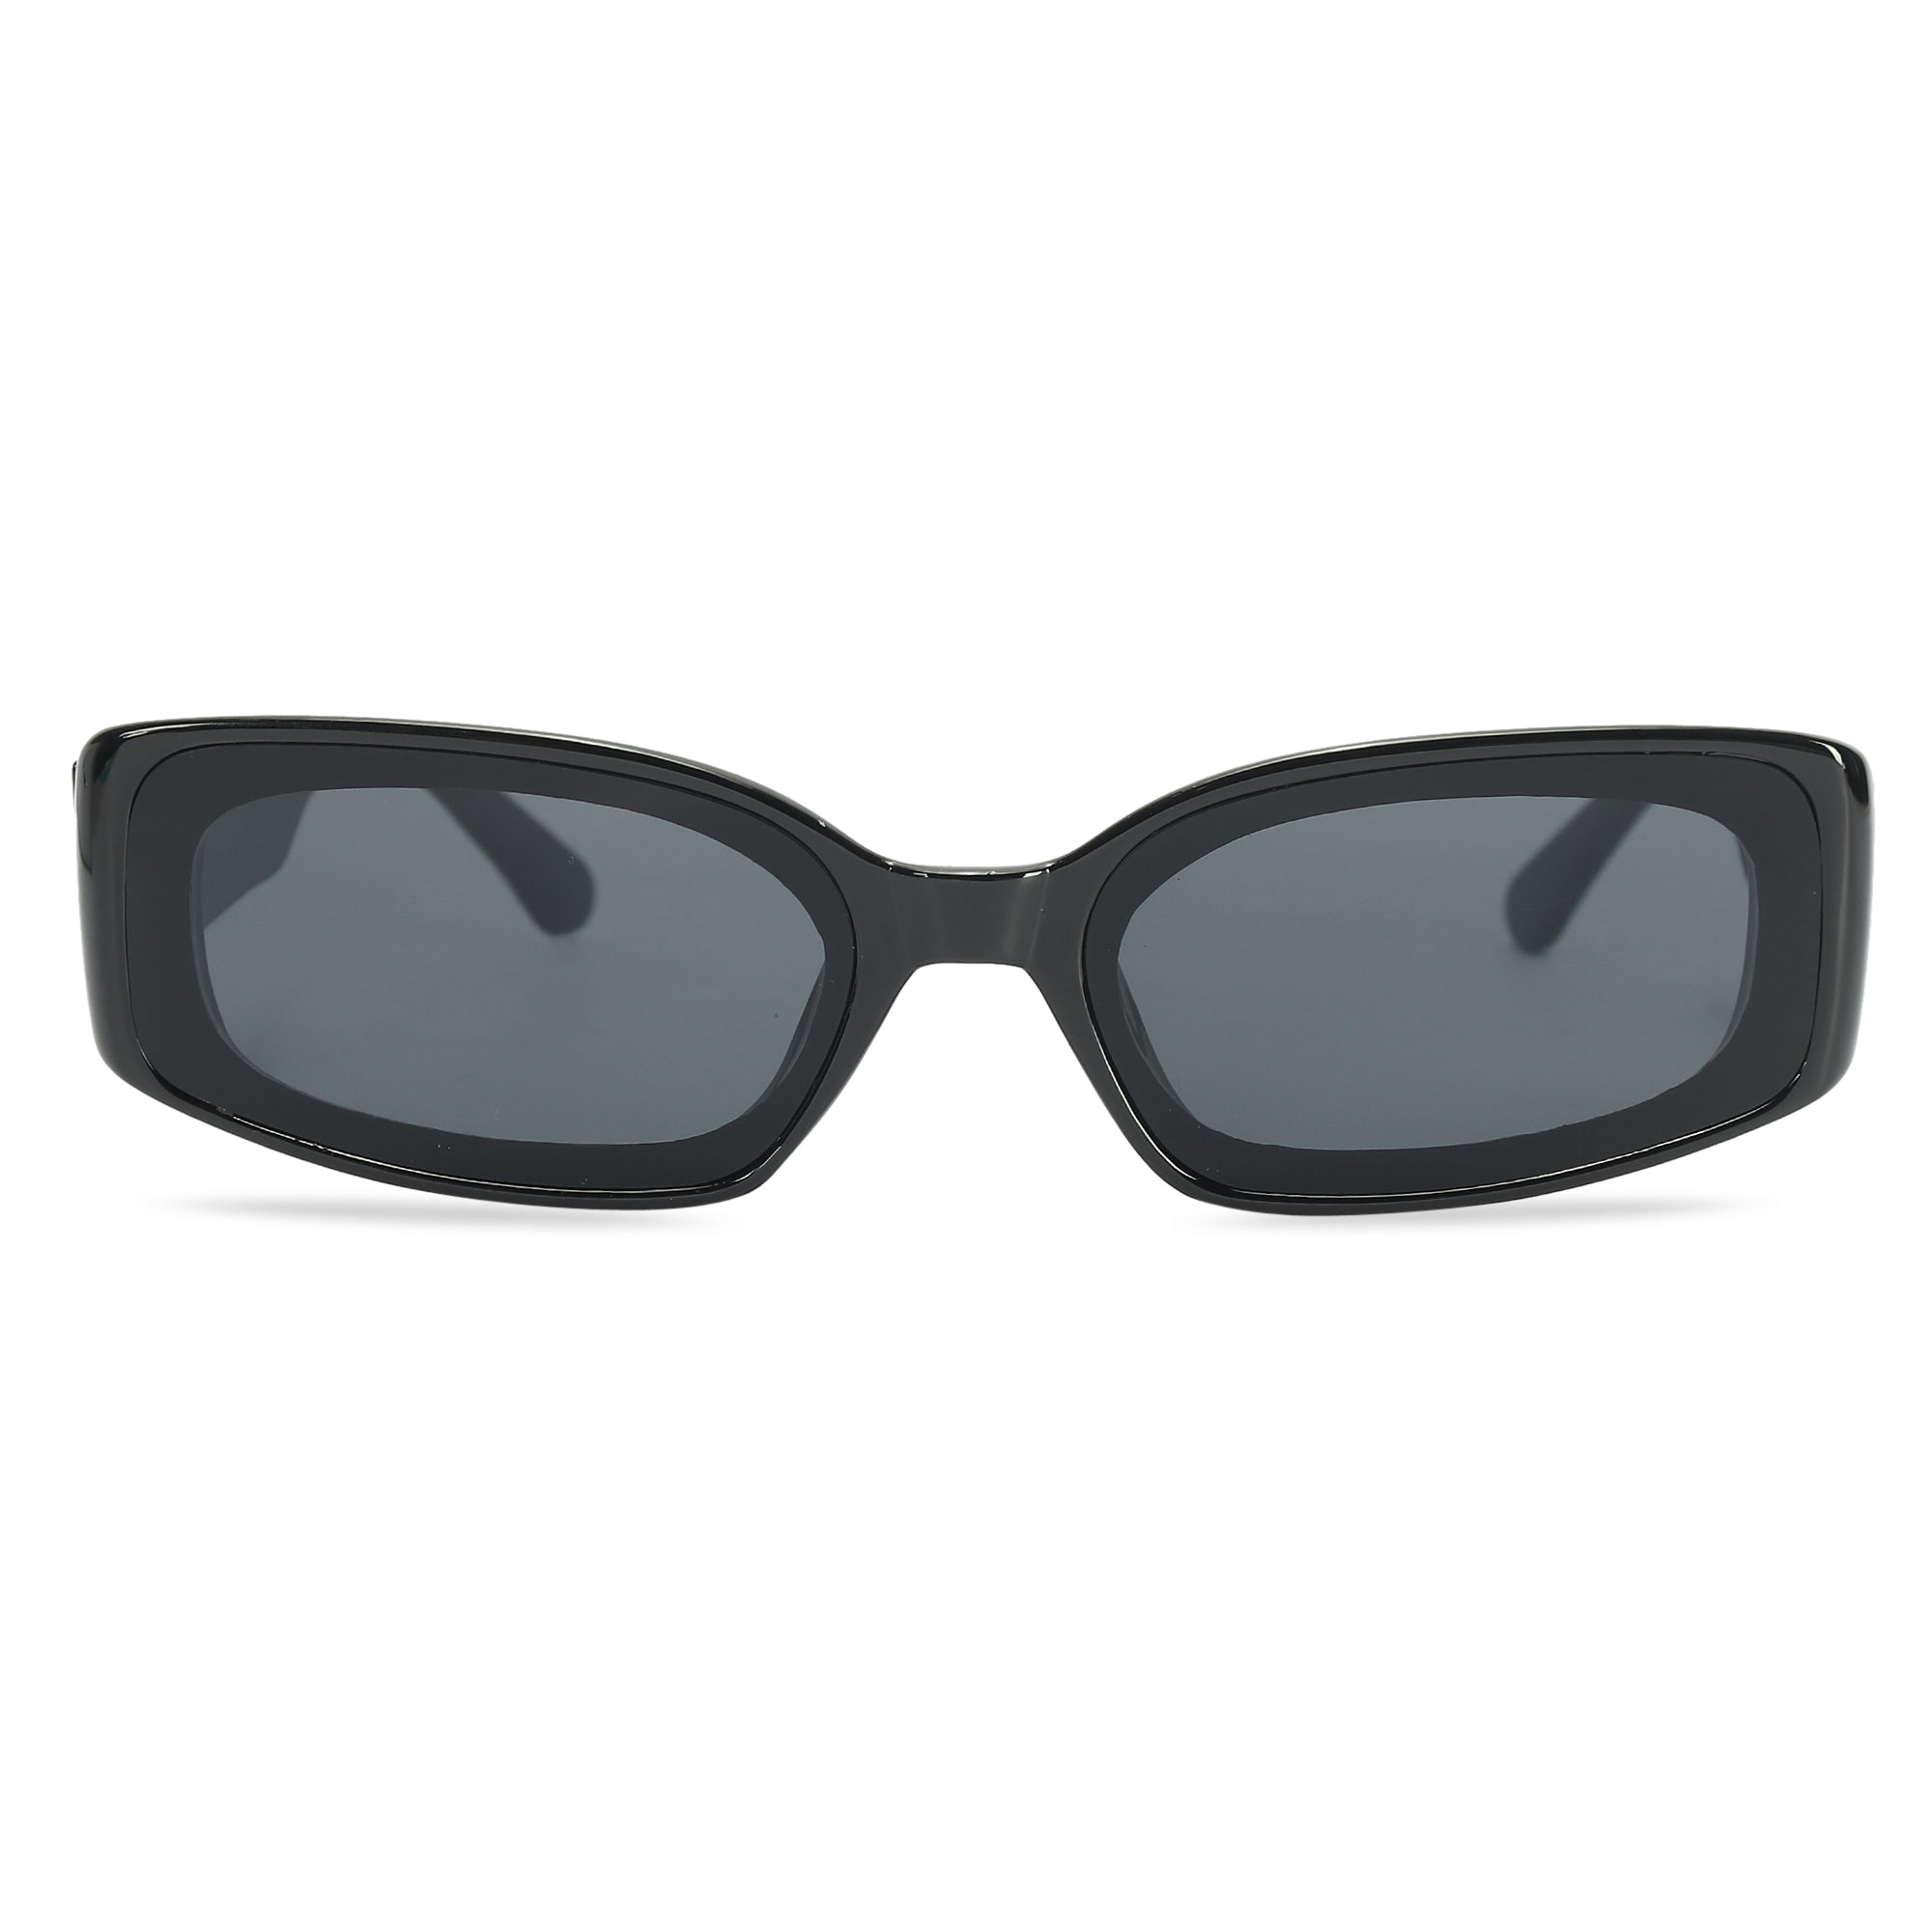 HL Sunberry Ace Glasses